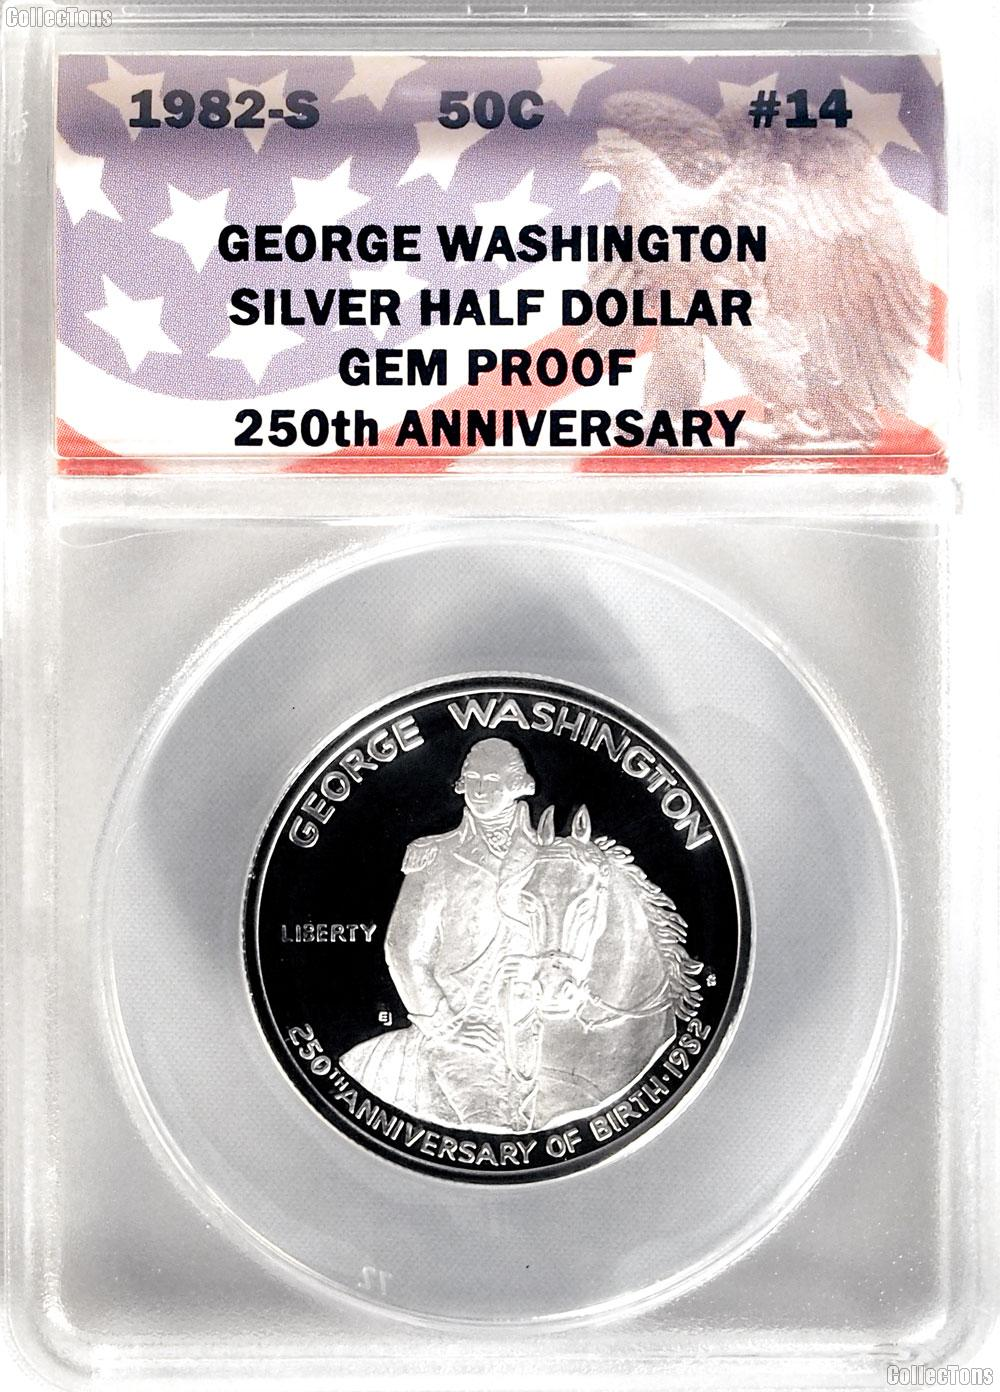 CollecTons Keepers #14: 1982-S George Washington Commemorative Proof Half Dollar Certified in Exclusive ANACS Gem Proof Holder